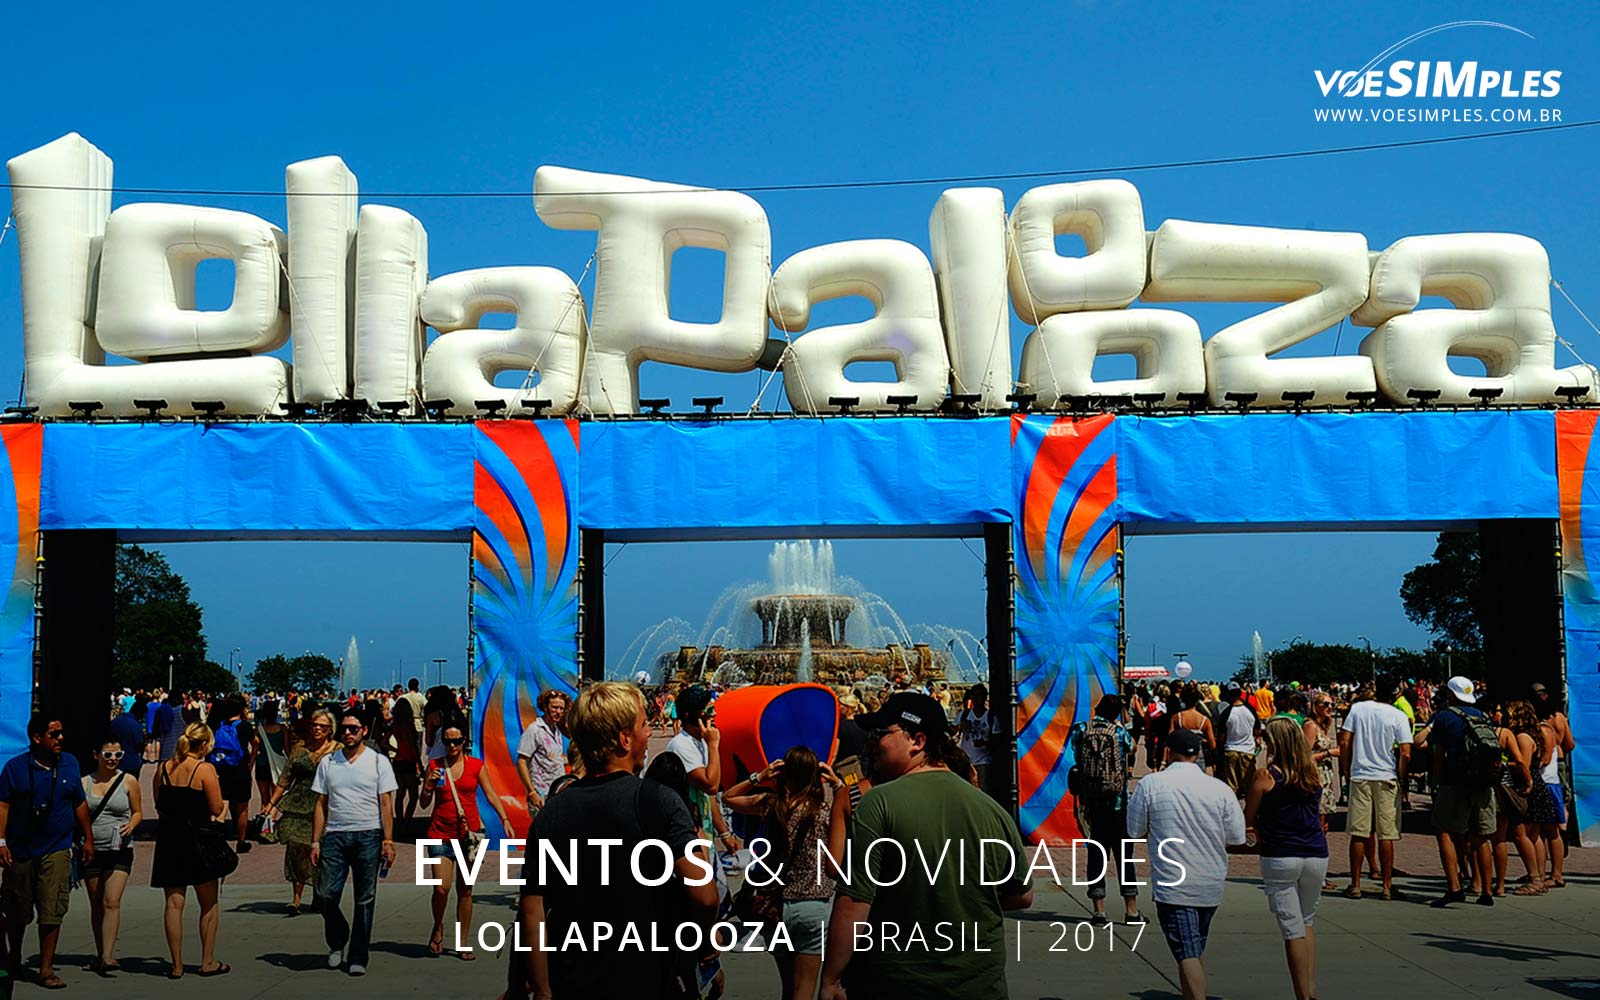 show-lollapalooza-brasil-2017-voesimples-passagens-aereas-promocionais-lollapalooza-passagens-promo-lollapalooza-2017